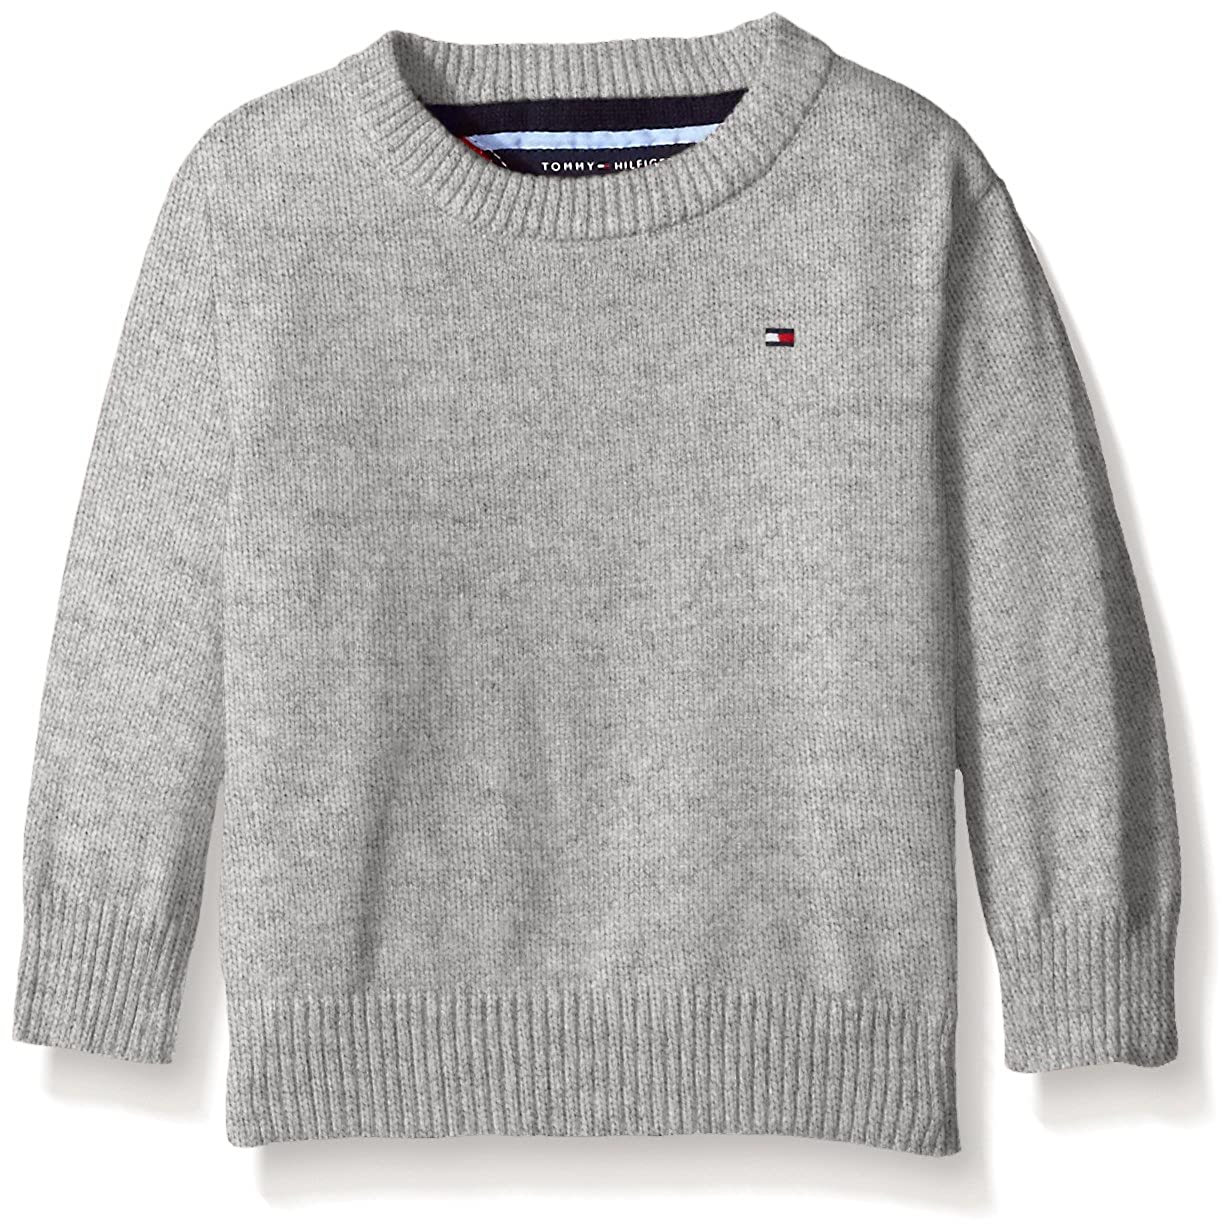 Tommy Hilfiger Boys Long Sleeve Alan Crew Neck Sweater